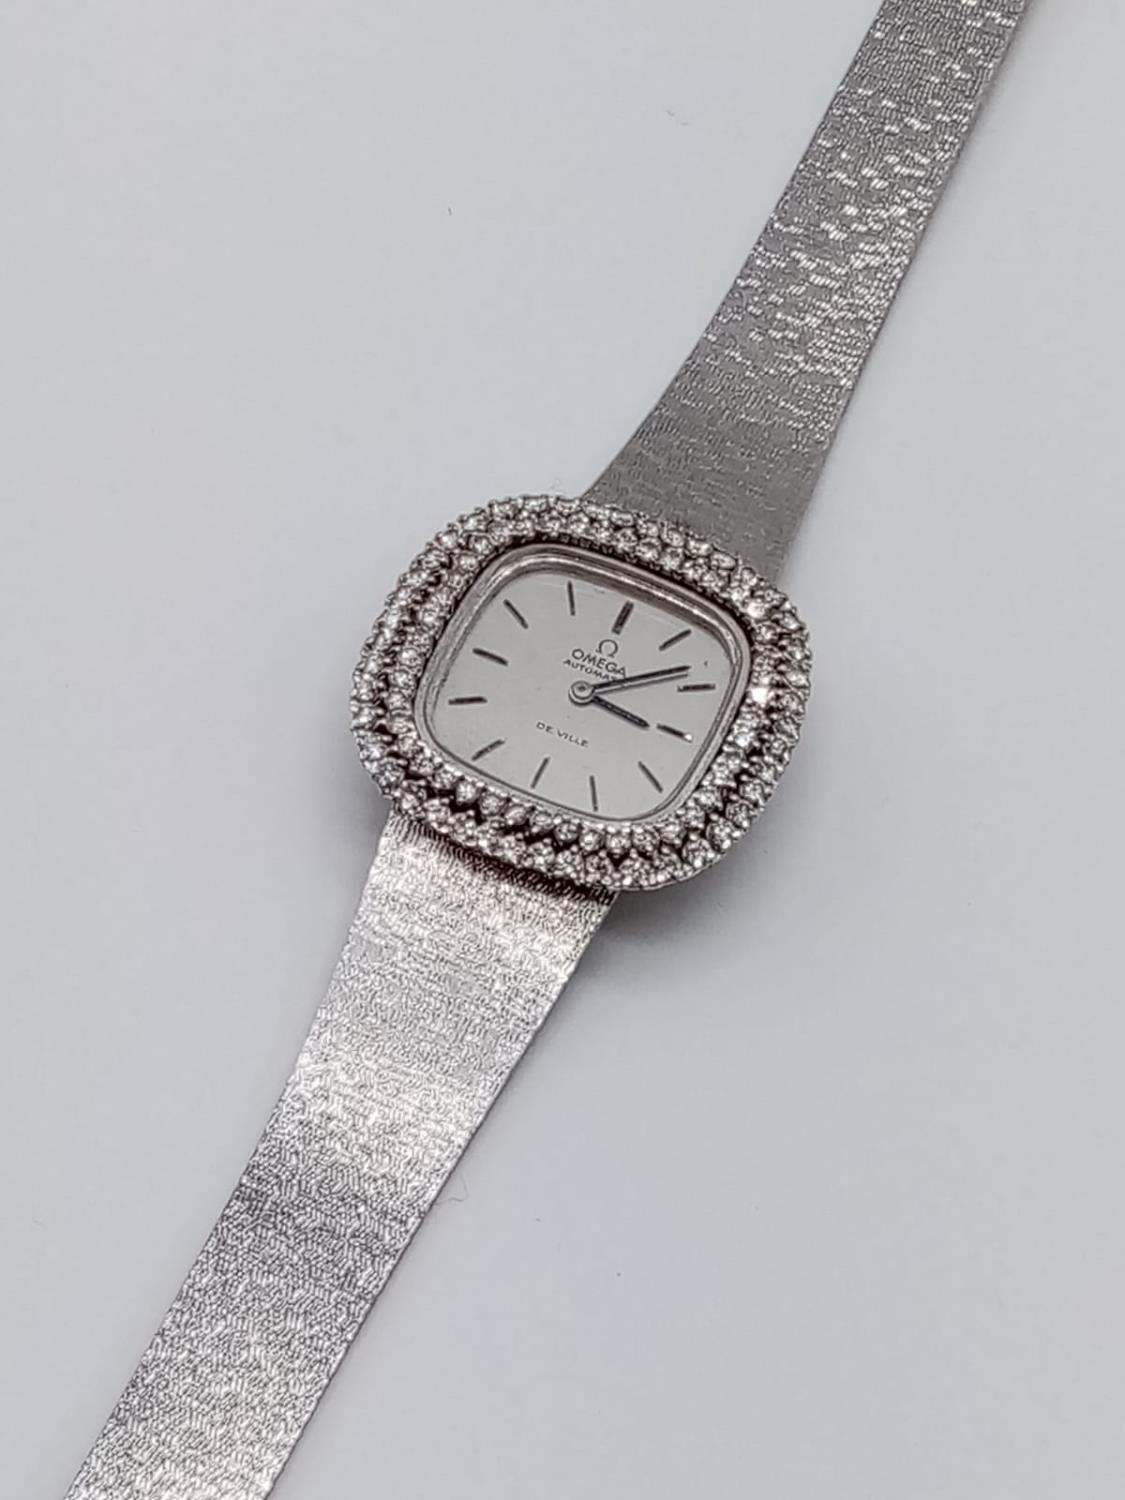 Vintage 18ct white gold OMEGA de Ville ladies automatic watch, square face with diamond encrusted - Image 7 of 7